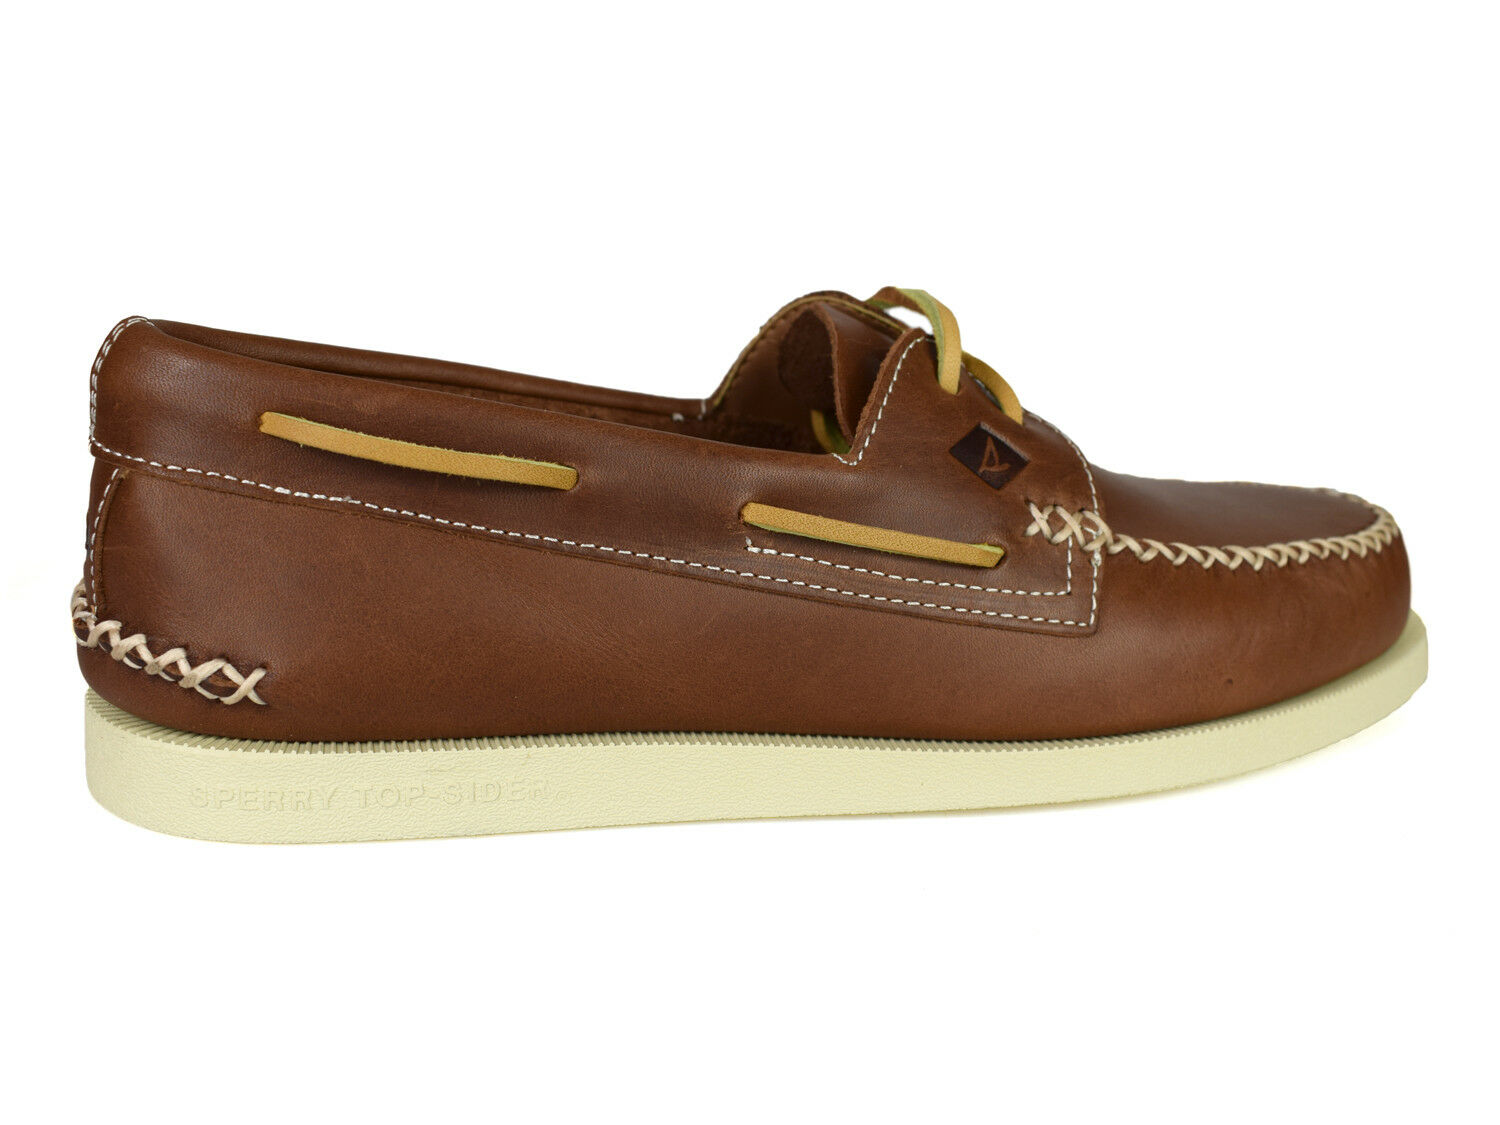 Sperry A/O Wedge Tan Leder  Uomo Uomo Uomo Boat Schuhes STS13160 f1522c